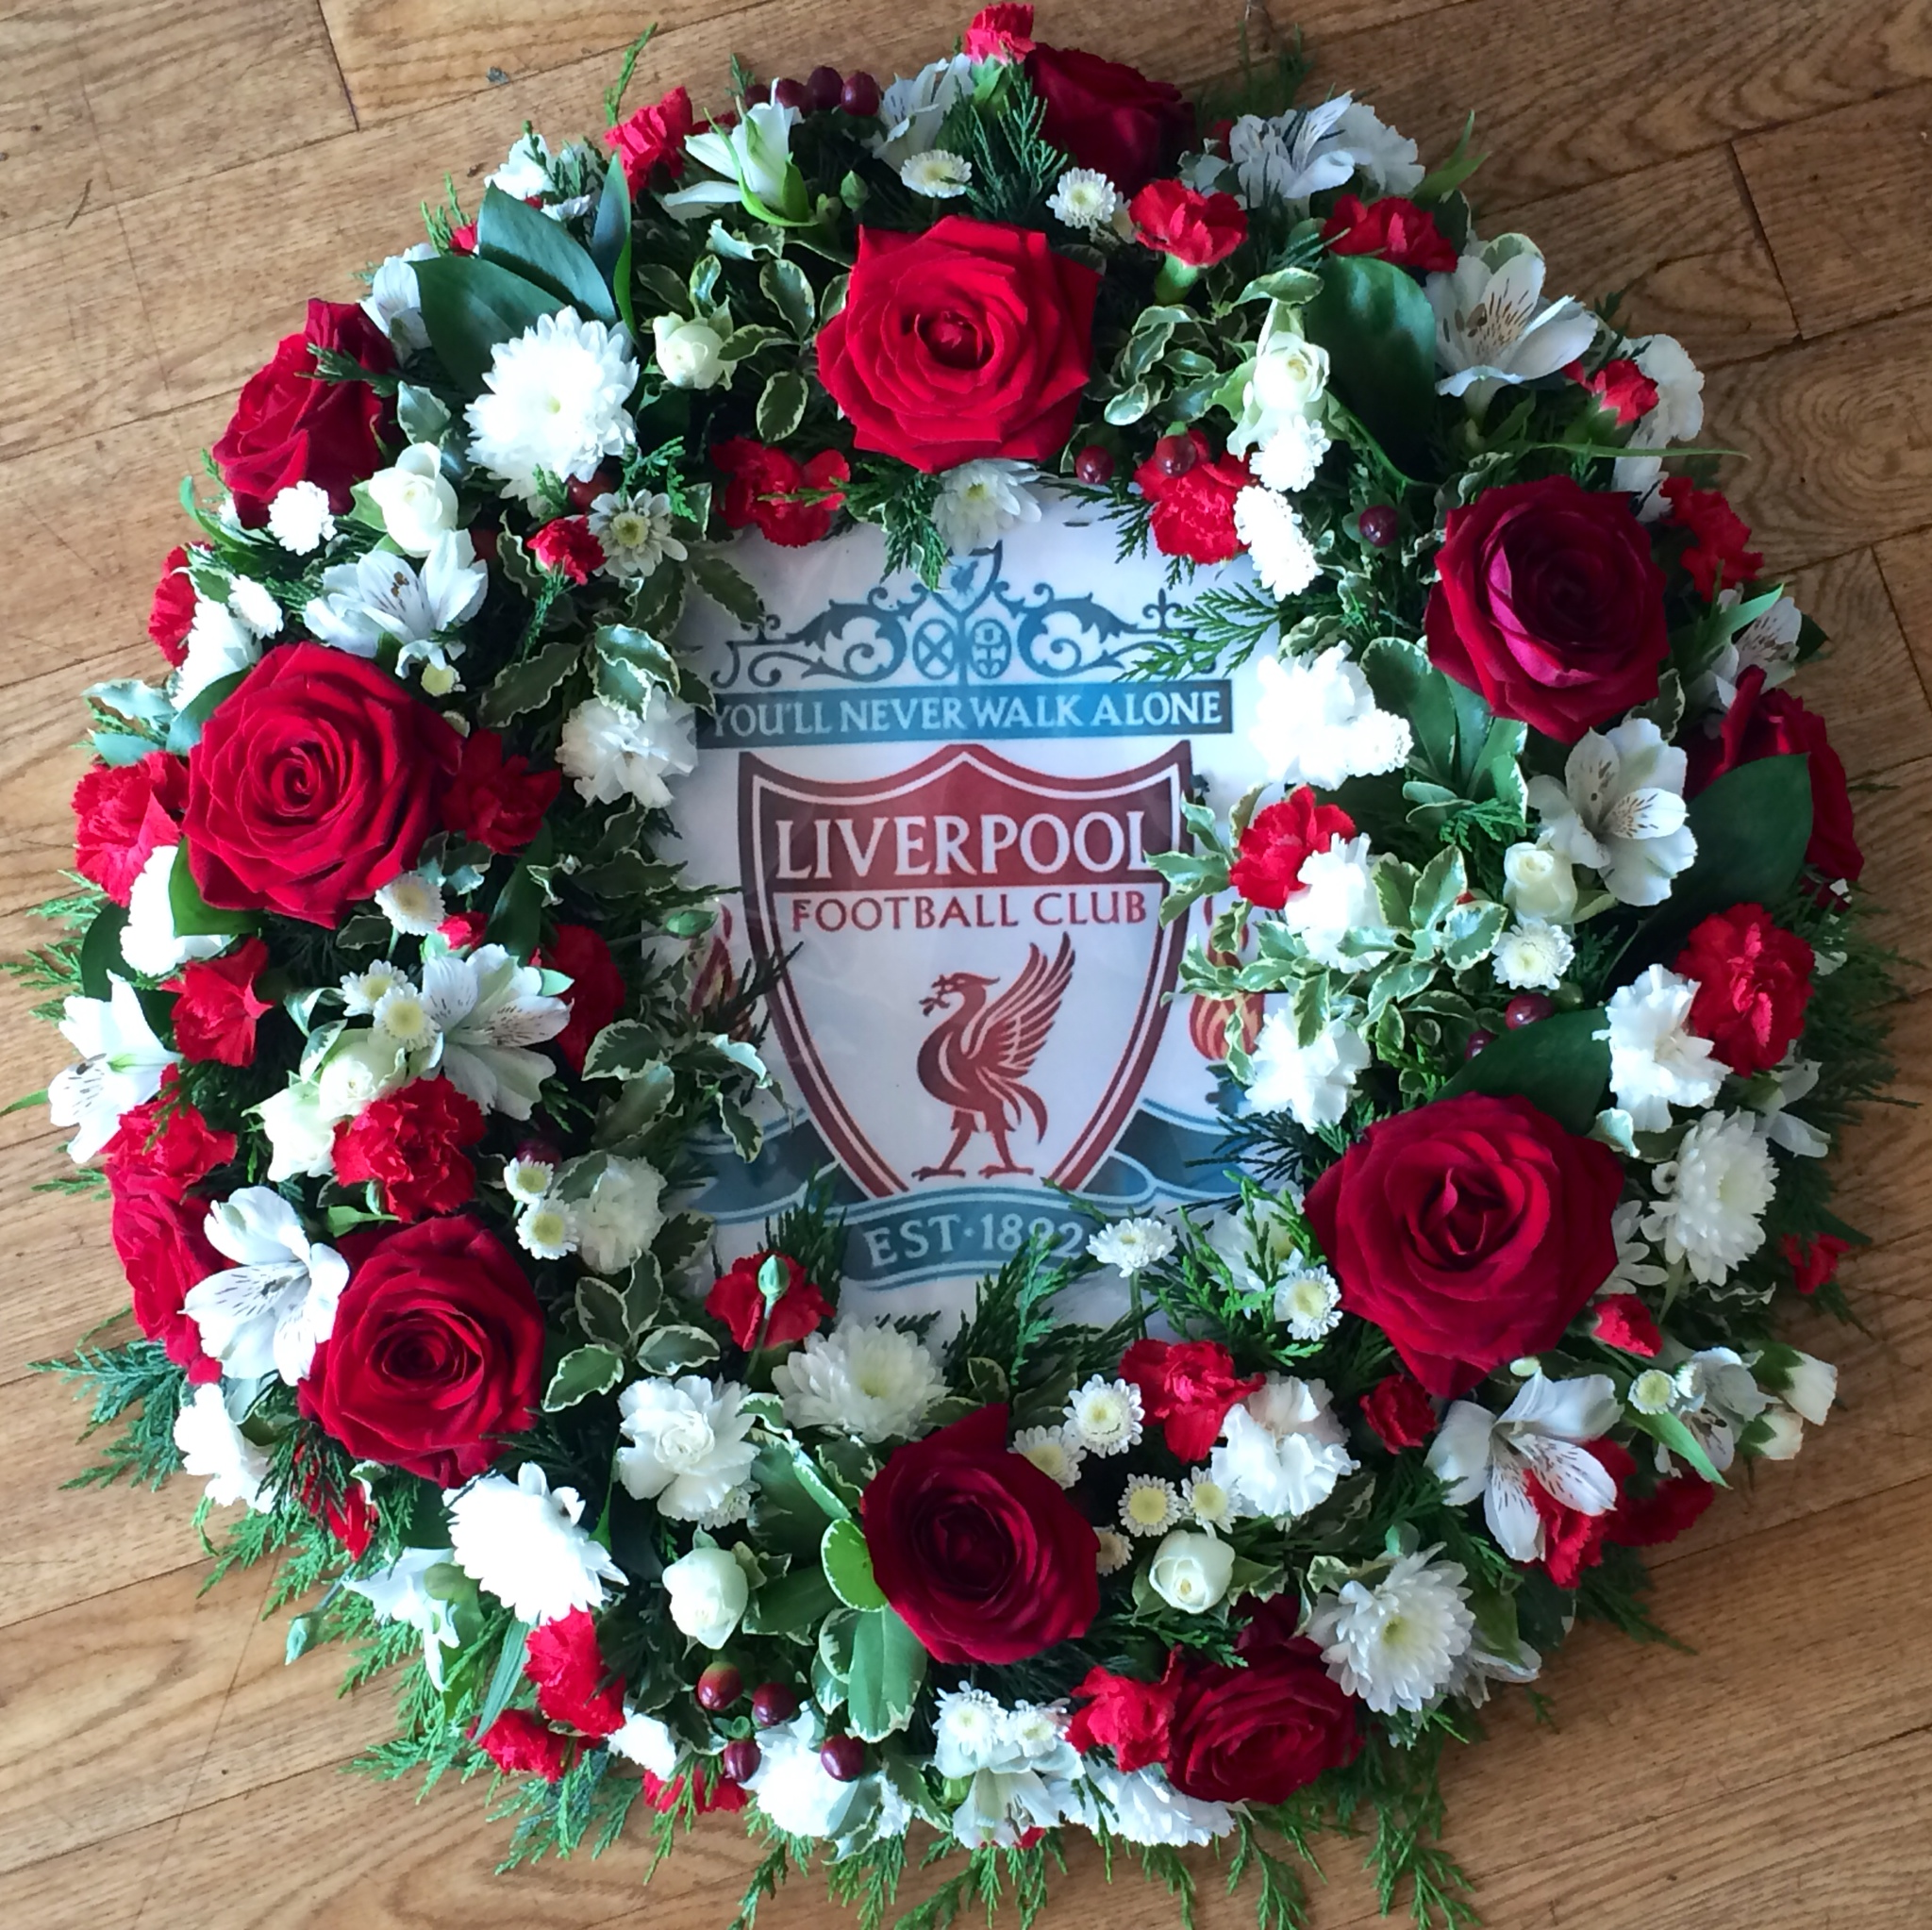 bespoke funeral tribute fresh flowers for a football player football fan unusual design